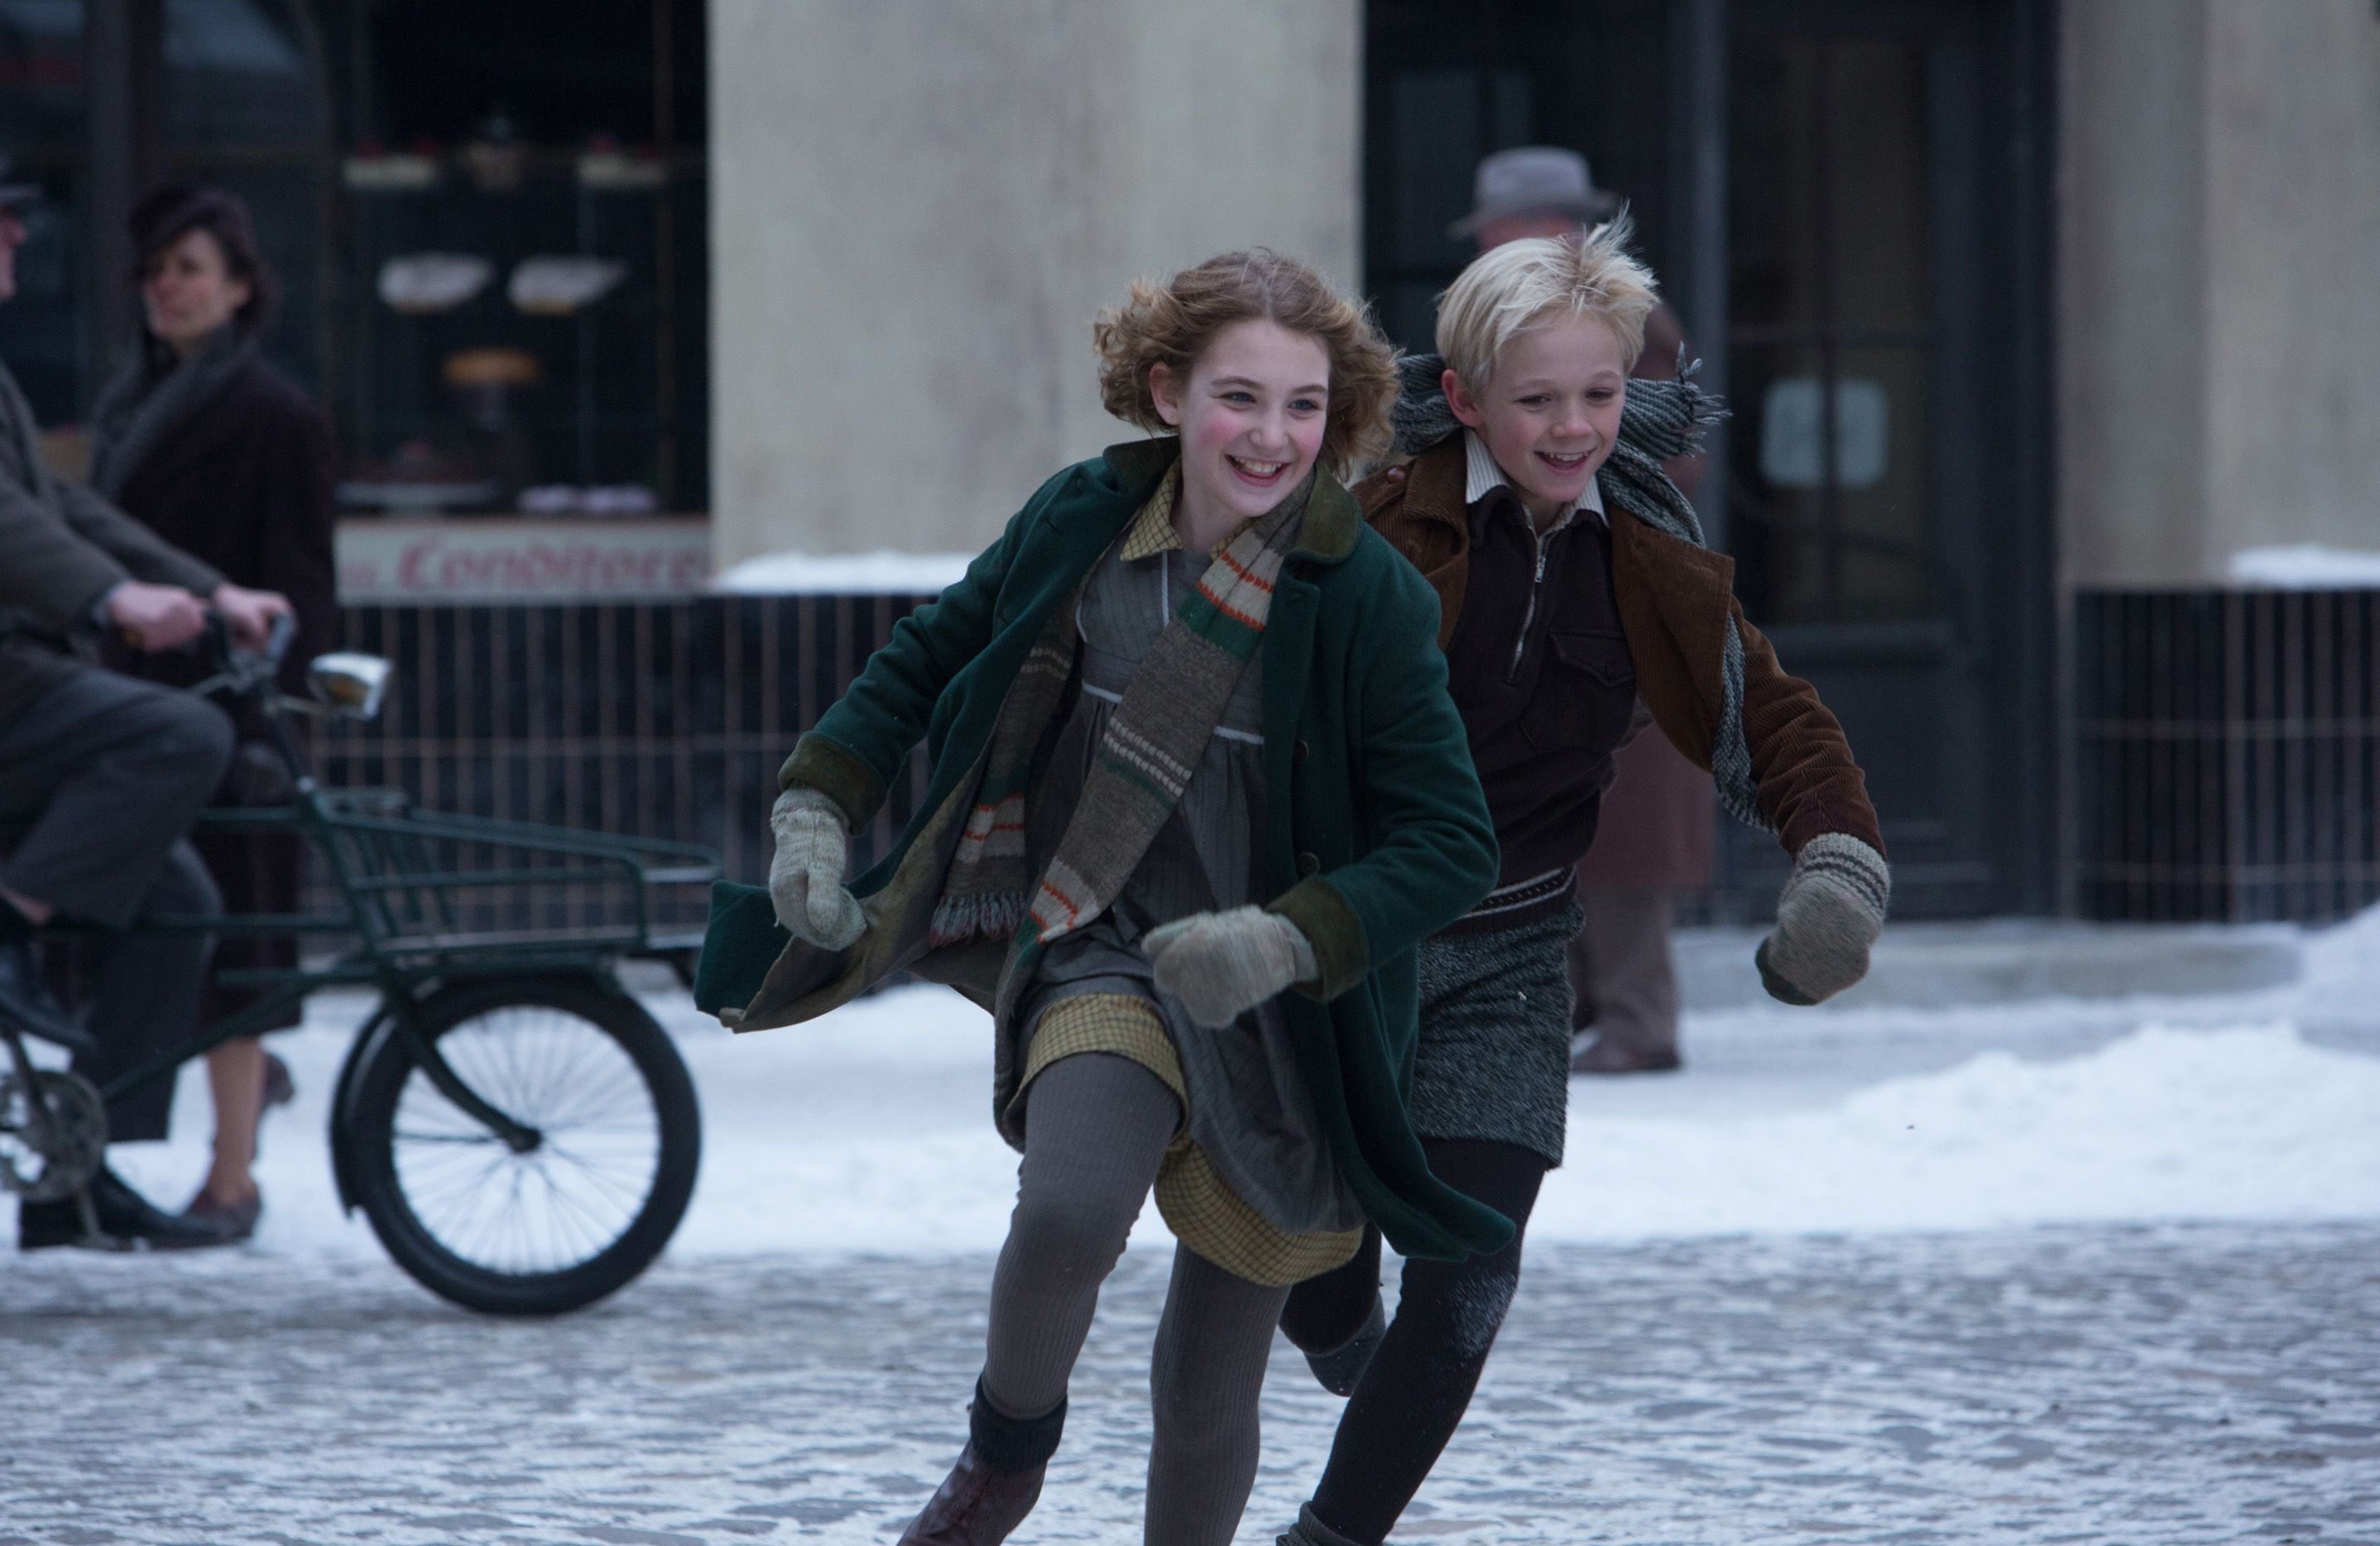 The Scene Where Liesel And Rudy Race Over A Kiss The Book Thief Movies Markus Zusak